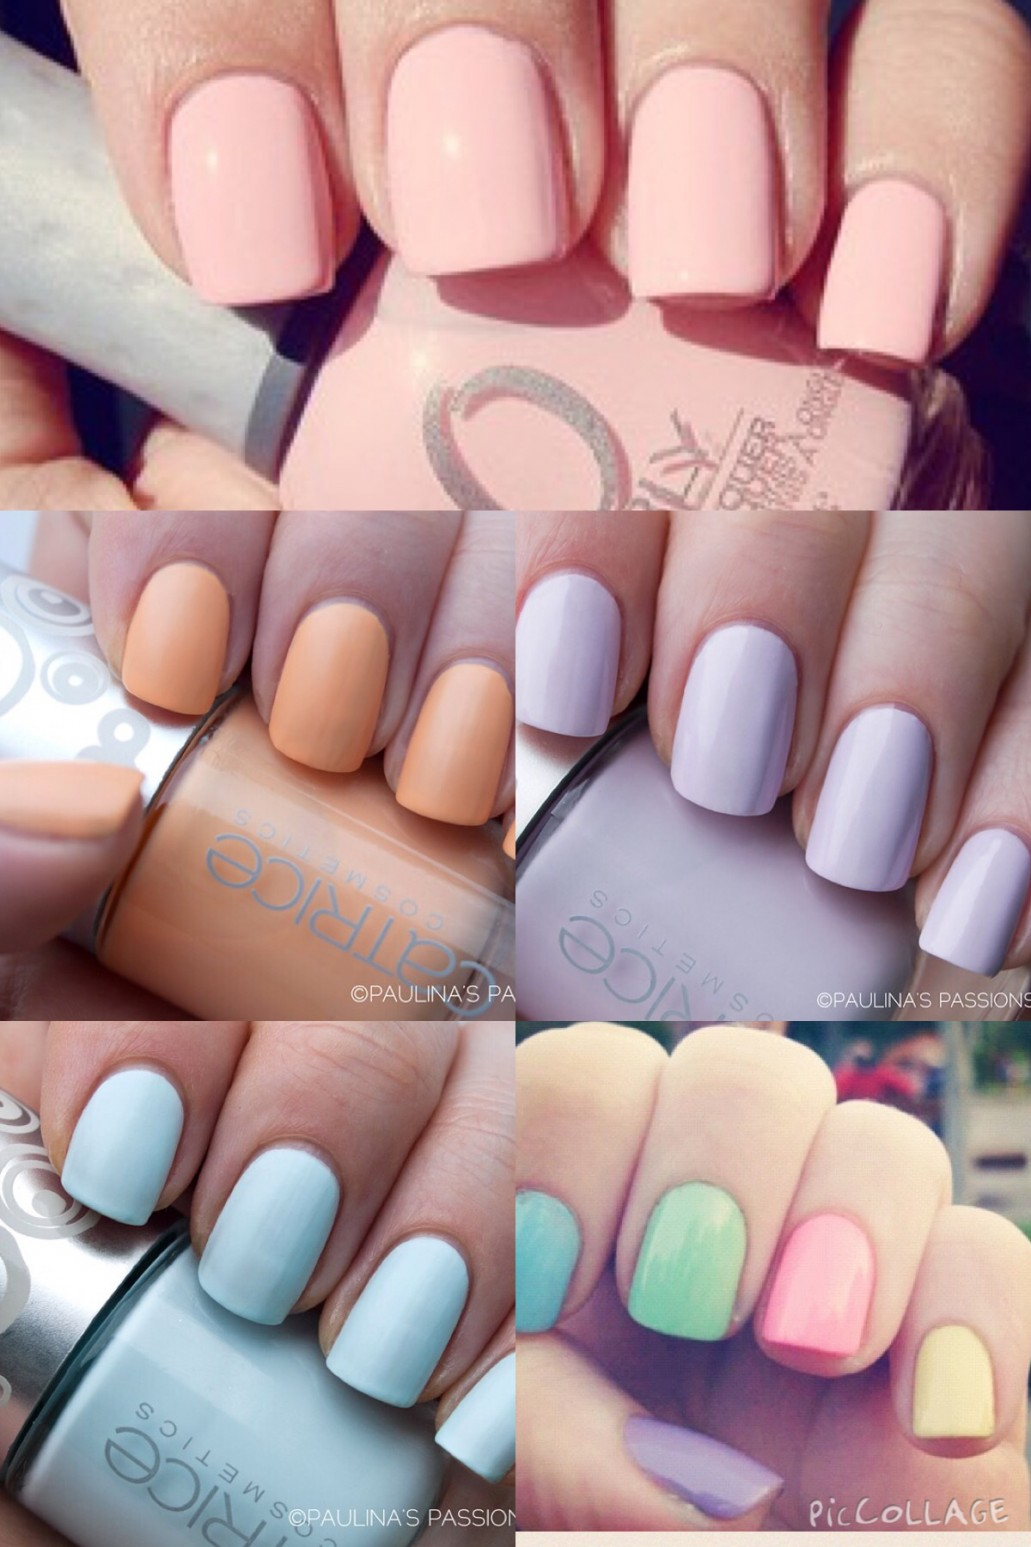 Most Popular Nail Polish Color Trends 2019 For Spring Summer